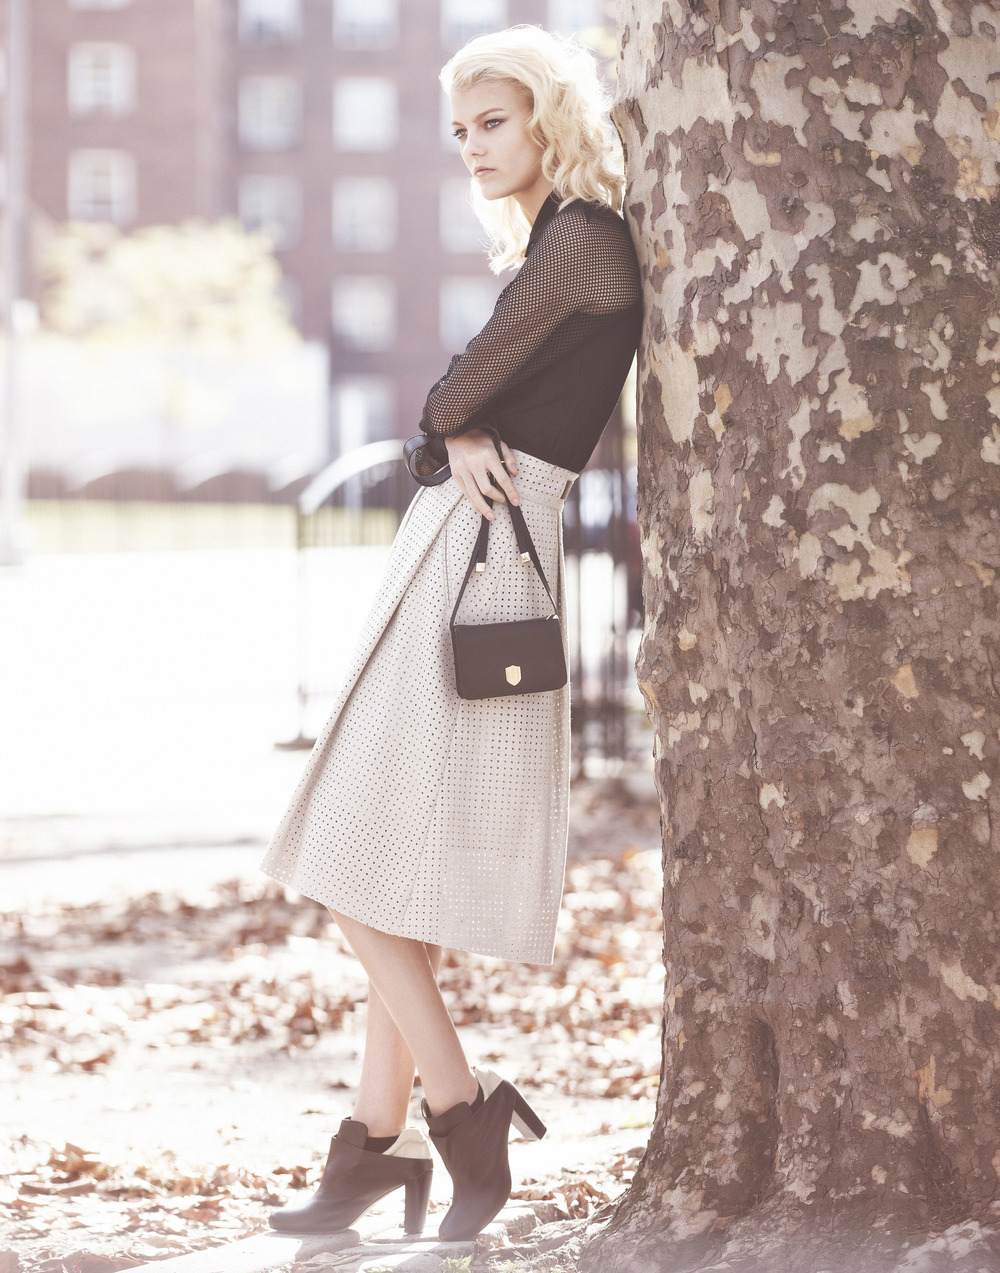 Sarah Fraser   (Wilhelmina)  wears a dress, bag and shoes by Osklen and skirt by Zara.